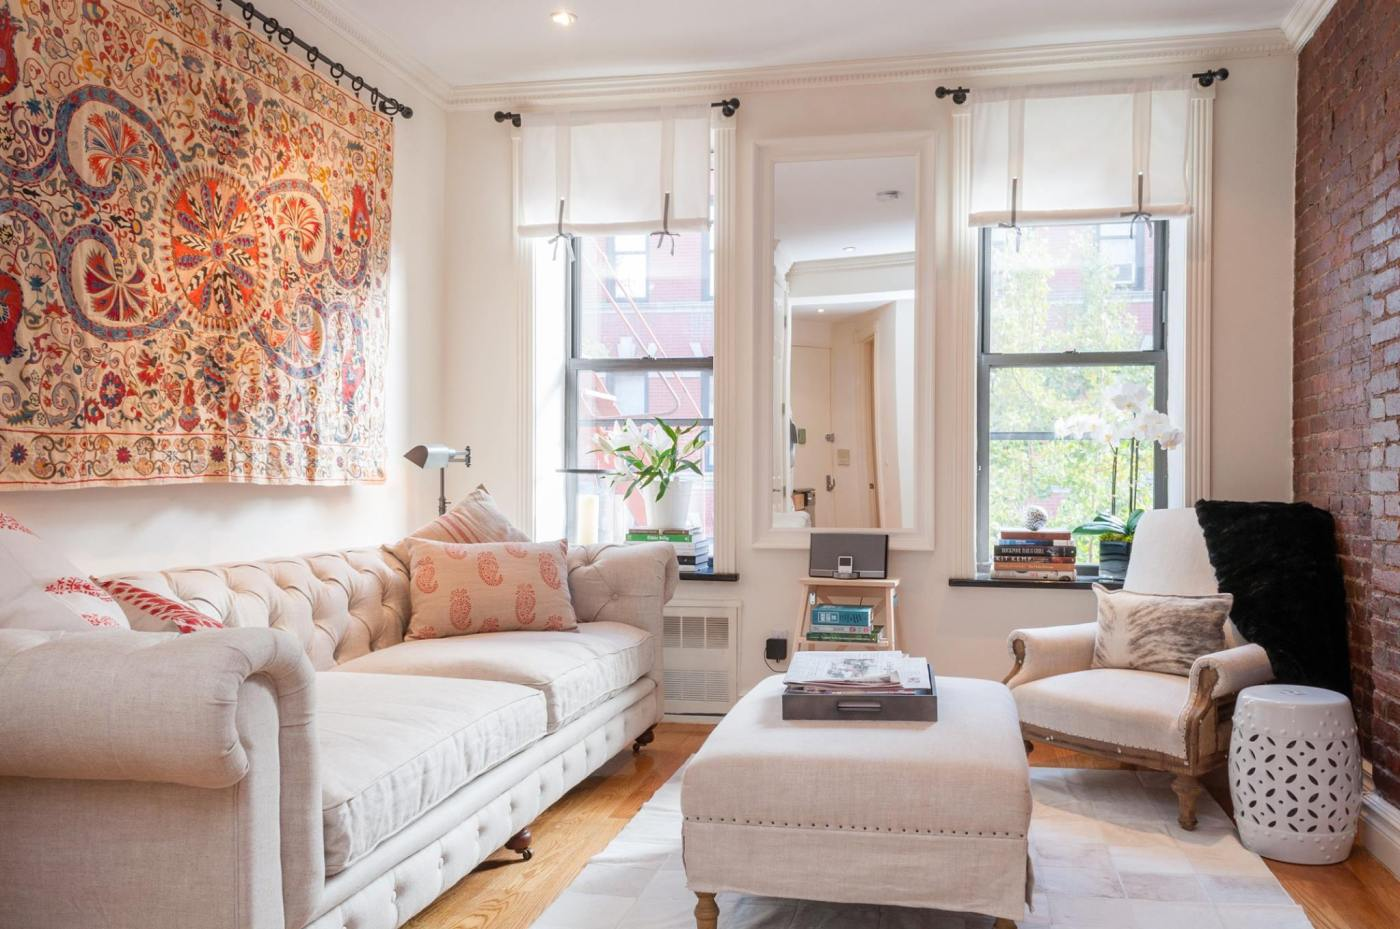 More Than Half of NYC's Airbnb Listings Could Be Illegal - Jewish Business NewsJewish Business News